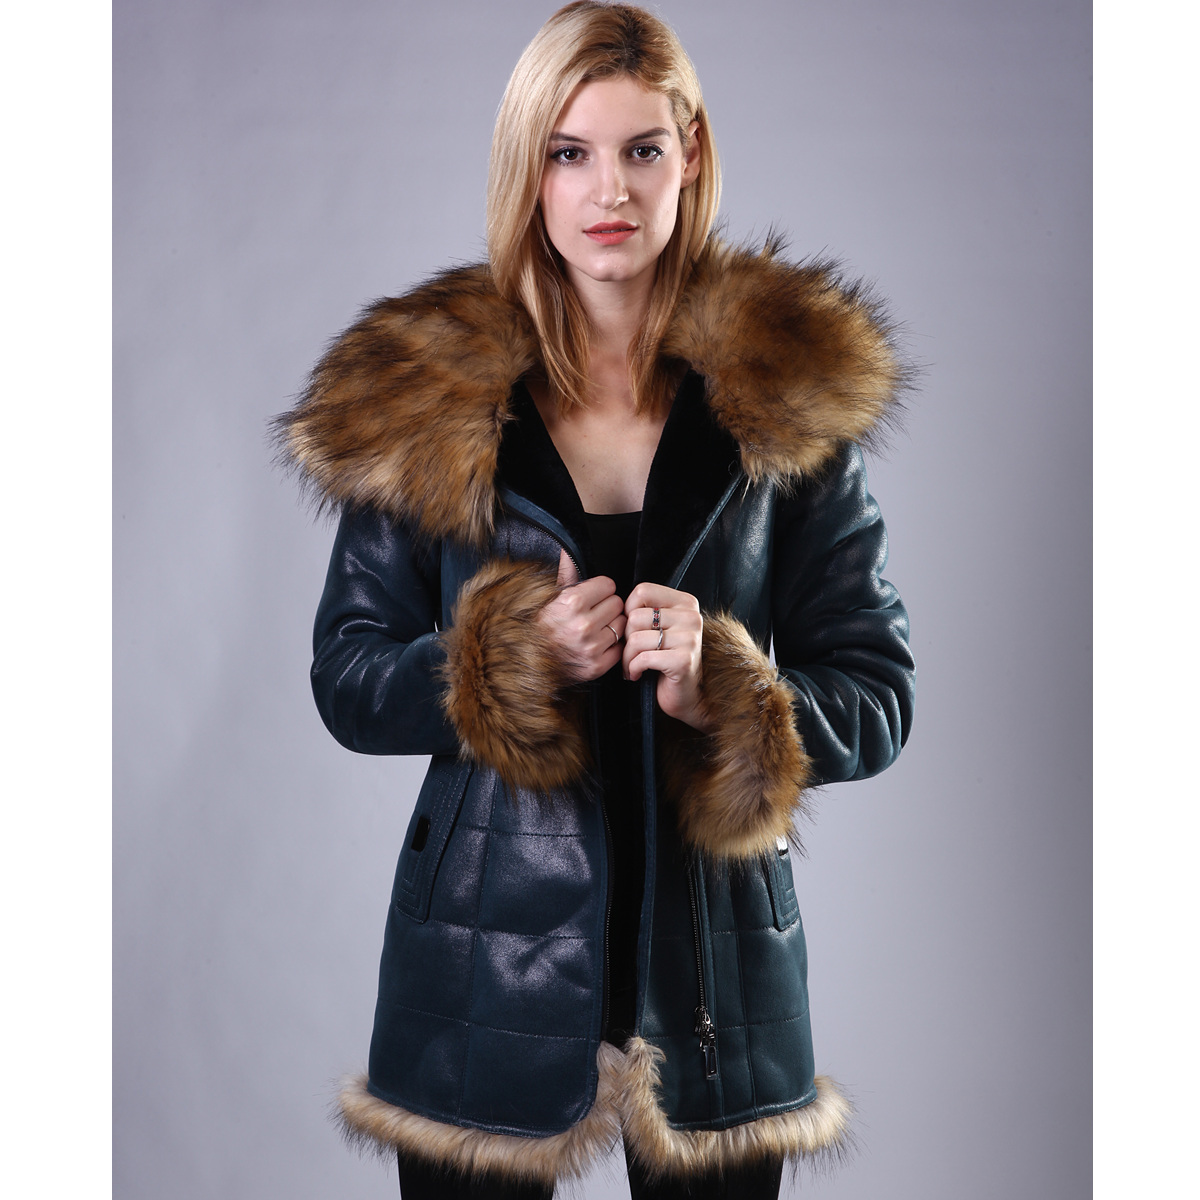 Women Coat Artificial sheepskin Raccoon Dog Fur Faux Leather Hooded collar Lady suit coat Direct supply from factory wholesale(China (Mainland))